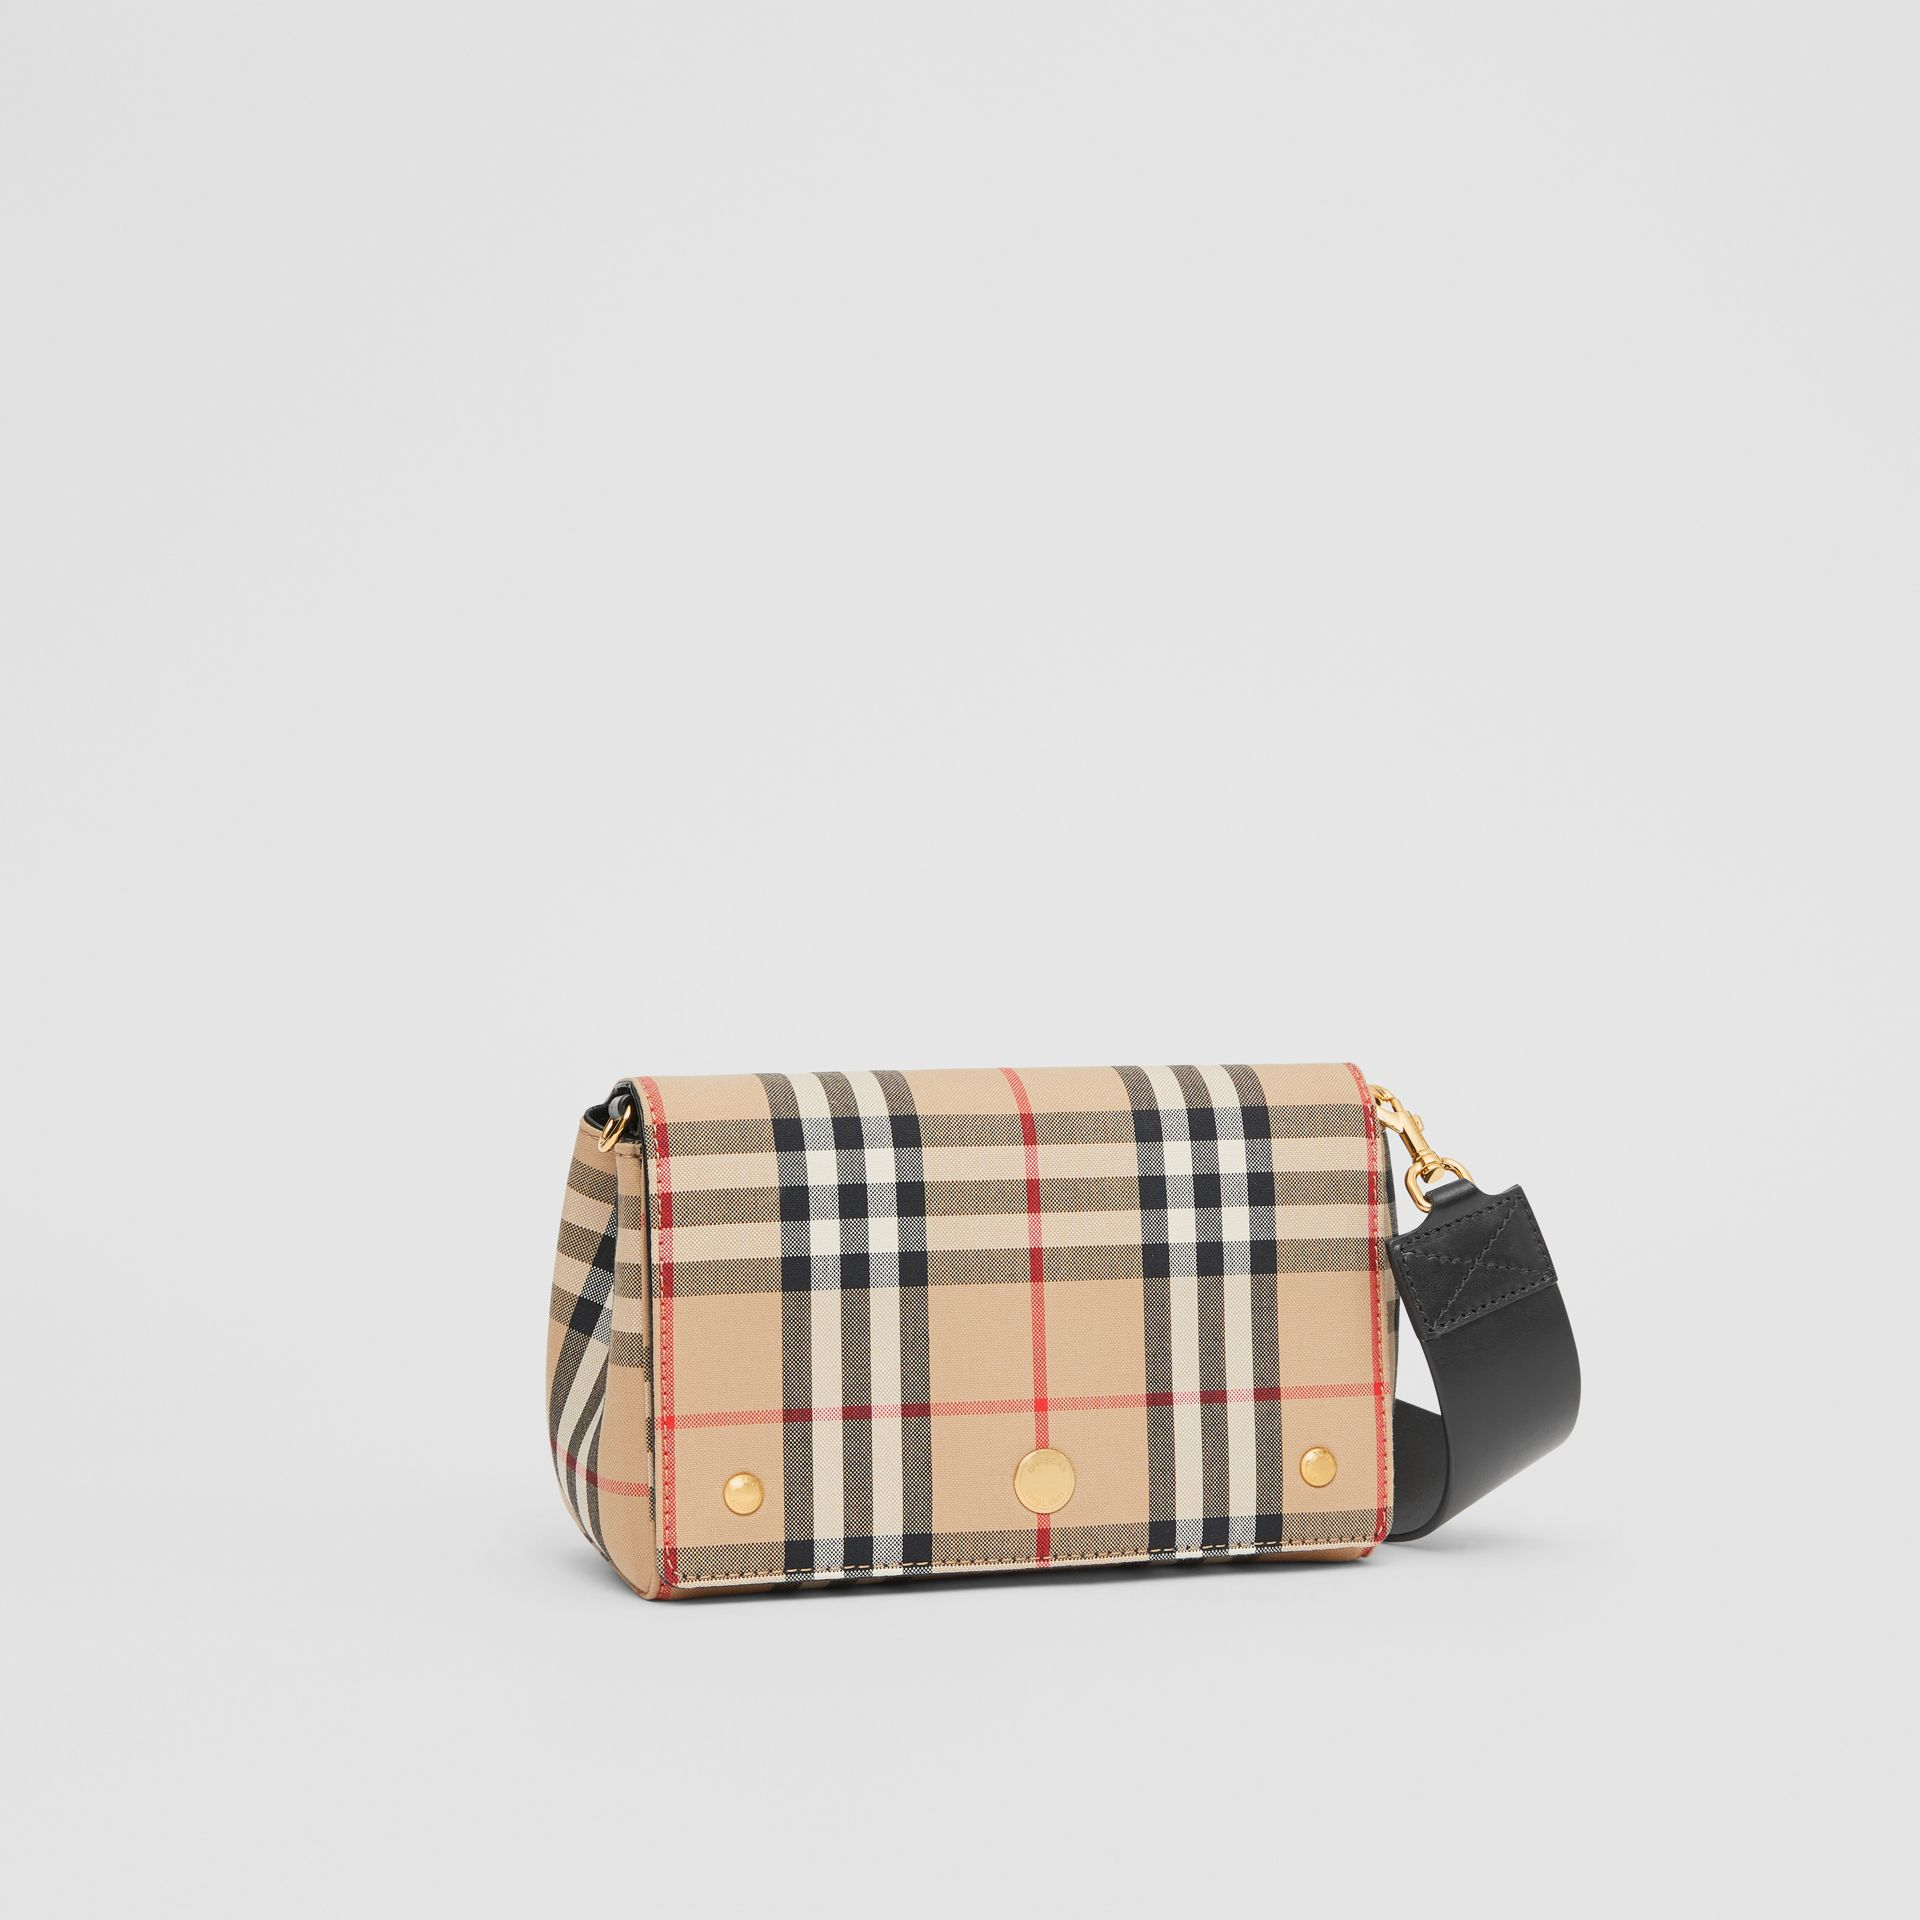 Small Vintage Check and Leather Crossbody Bag in Archive Beige/black | Burberry Hong Kong S.A.R - gallery image 6